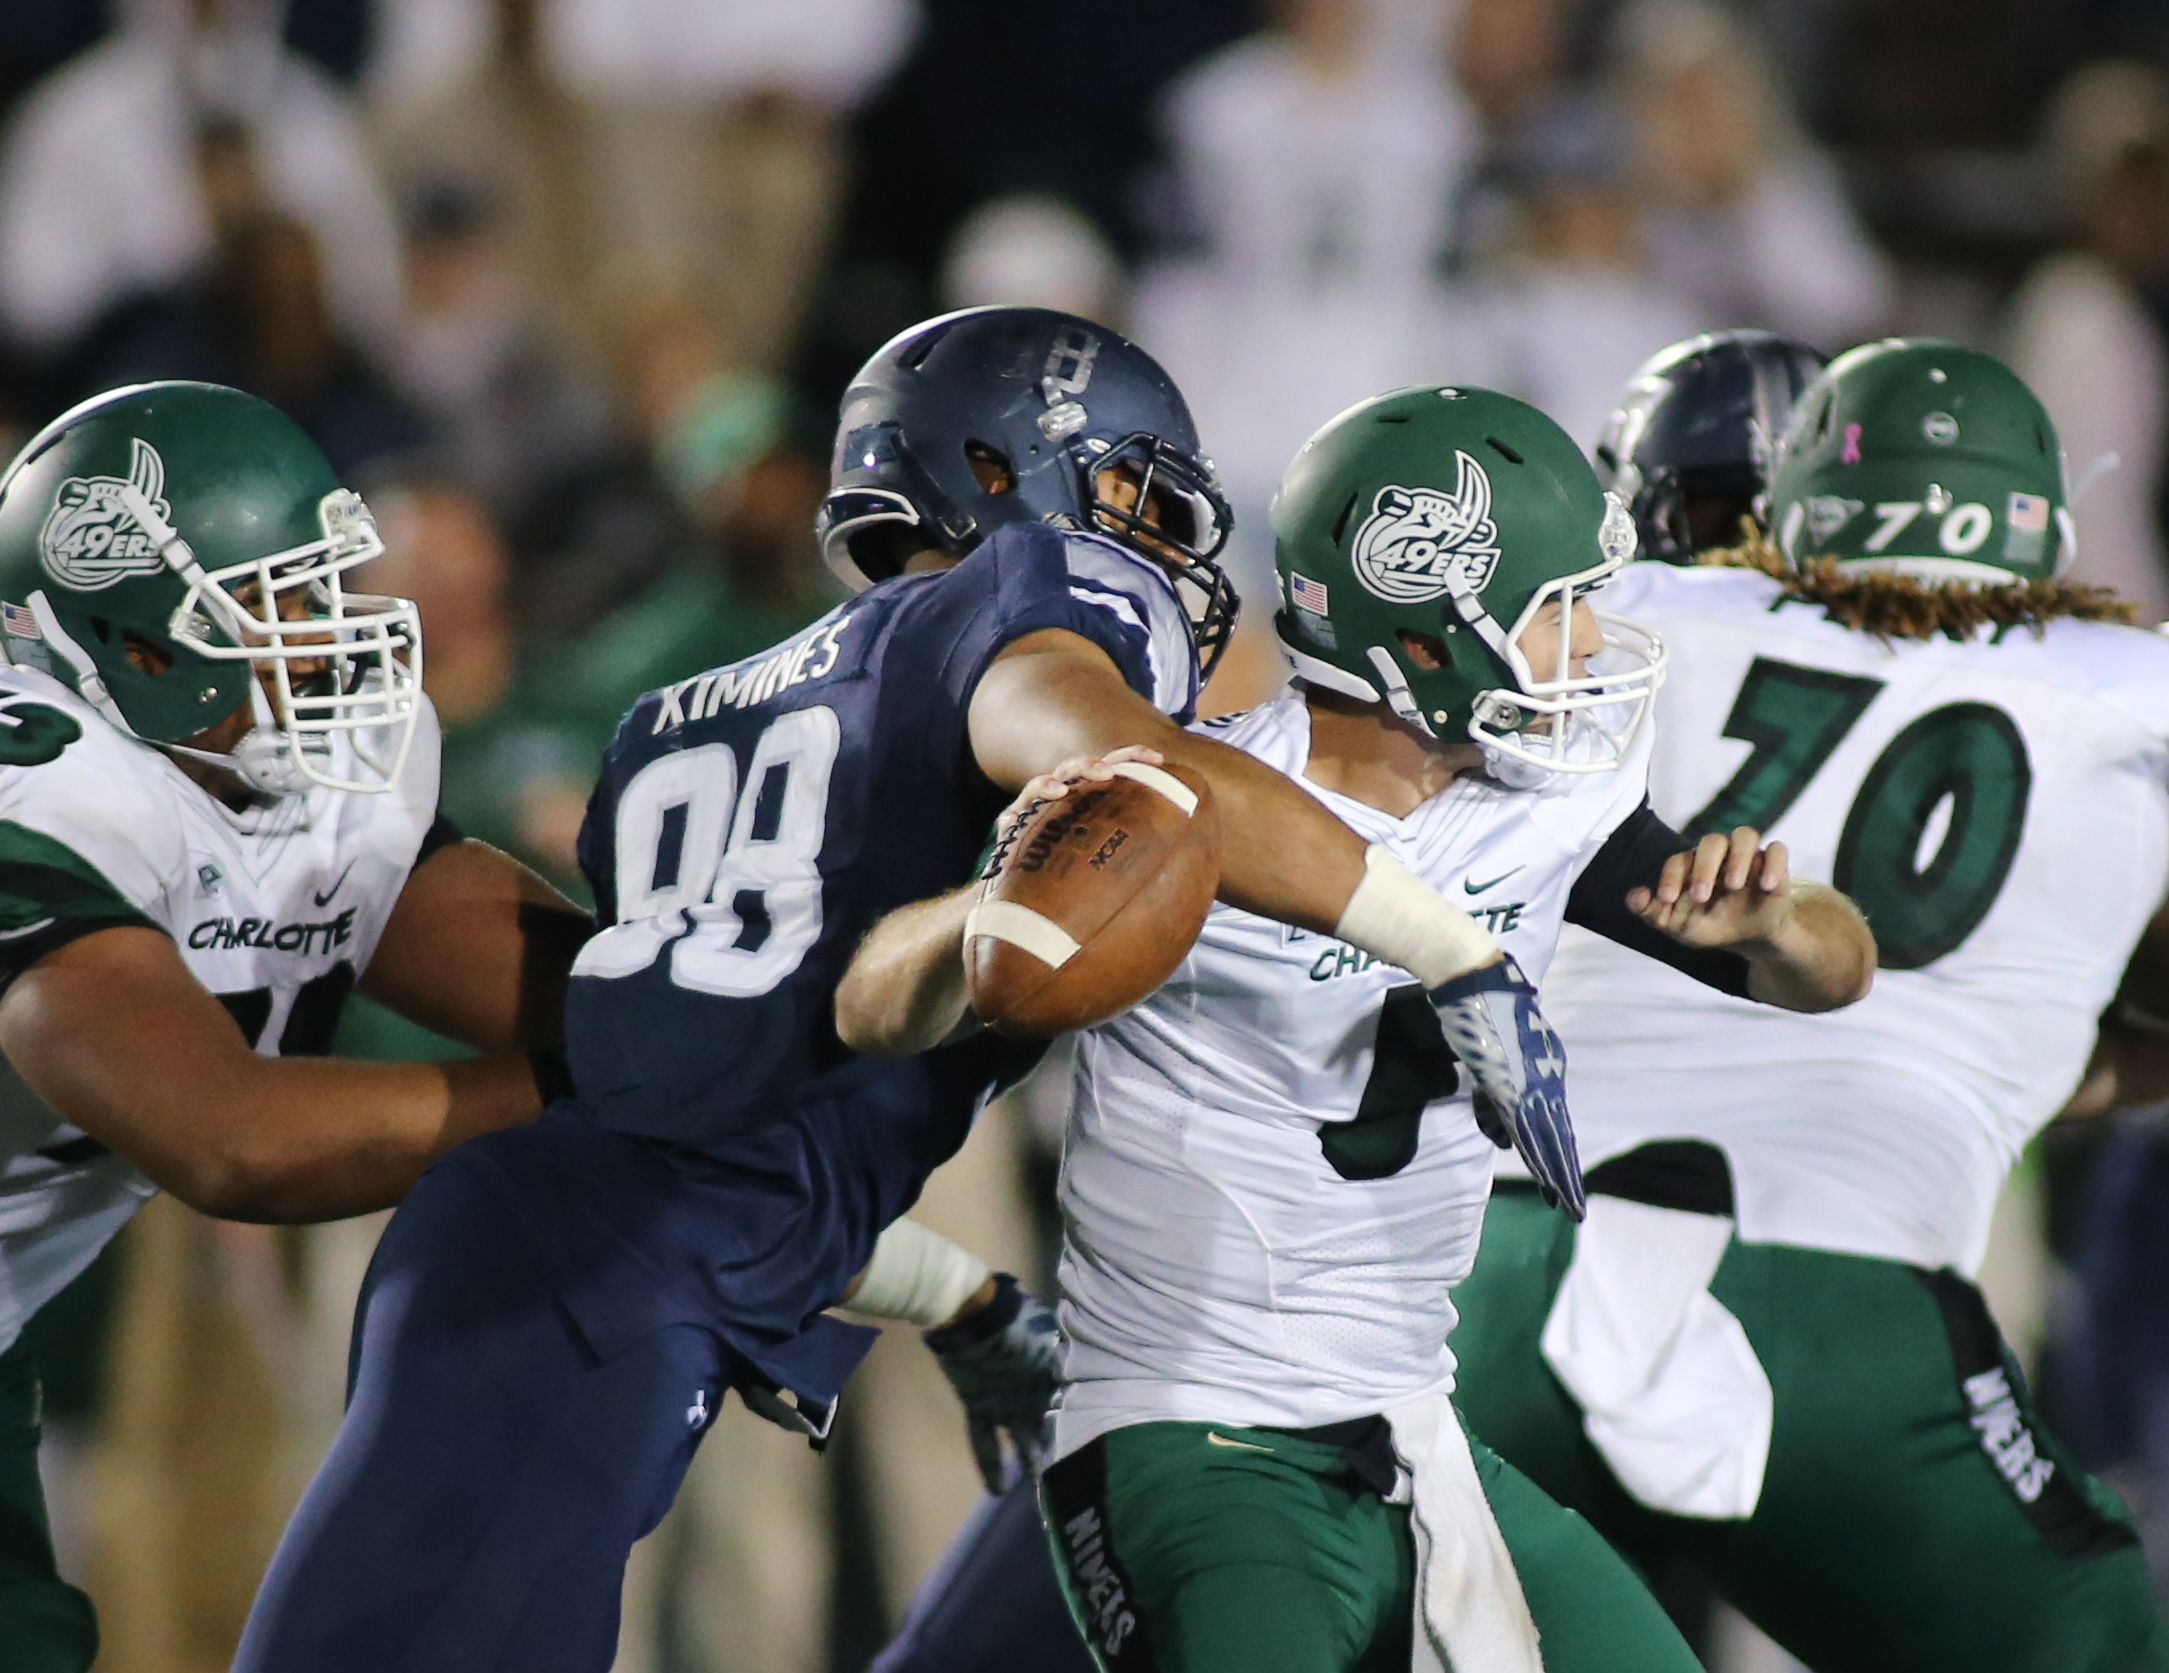 Old Dominion's Oshane Ximines sacks Charlotte quarterback Lee McNeill in the closing minutes to seal ODU's 37-34 win, Saturday, Oct. 17, 2015 at Foreman Field in Norfolk.  (Jason Hirschfeld | For The Virginian-Pilot)